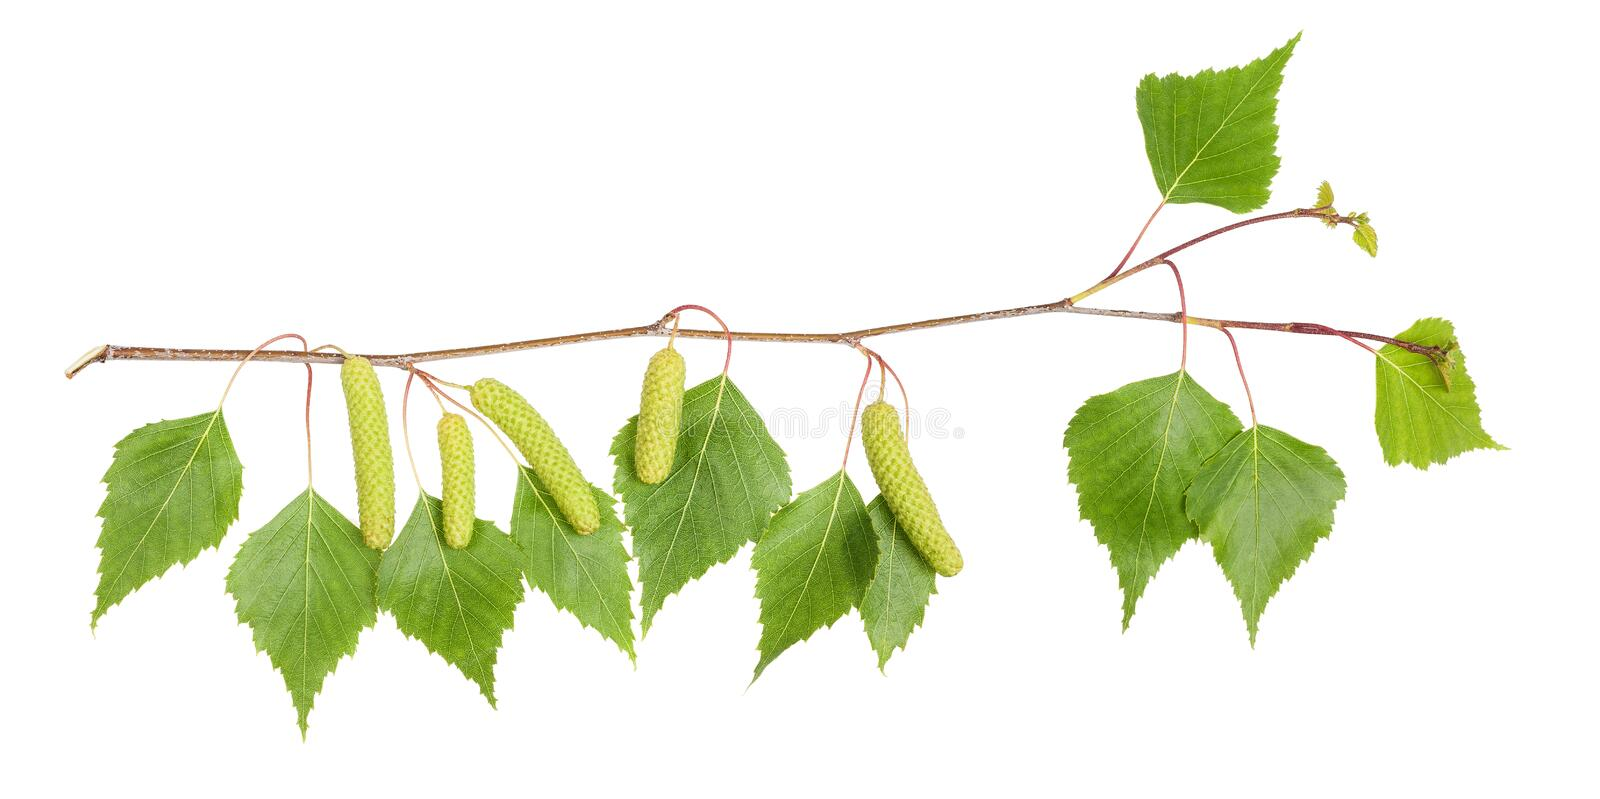 Birch branch stock images